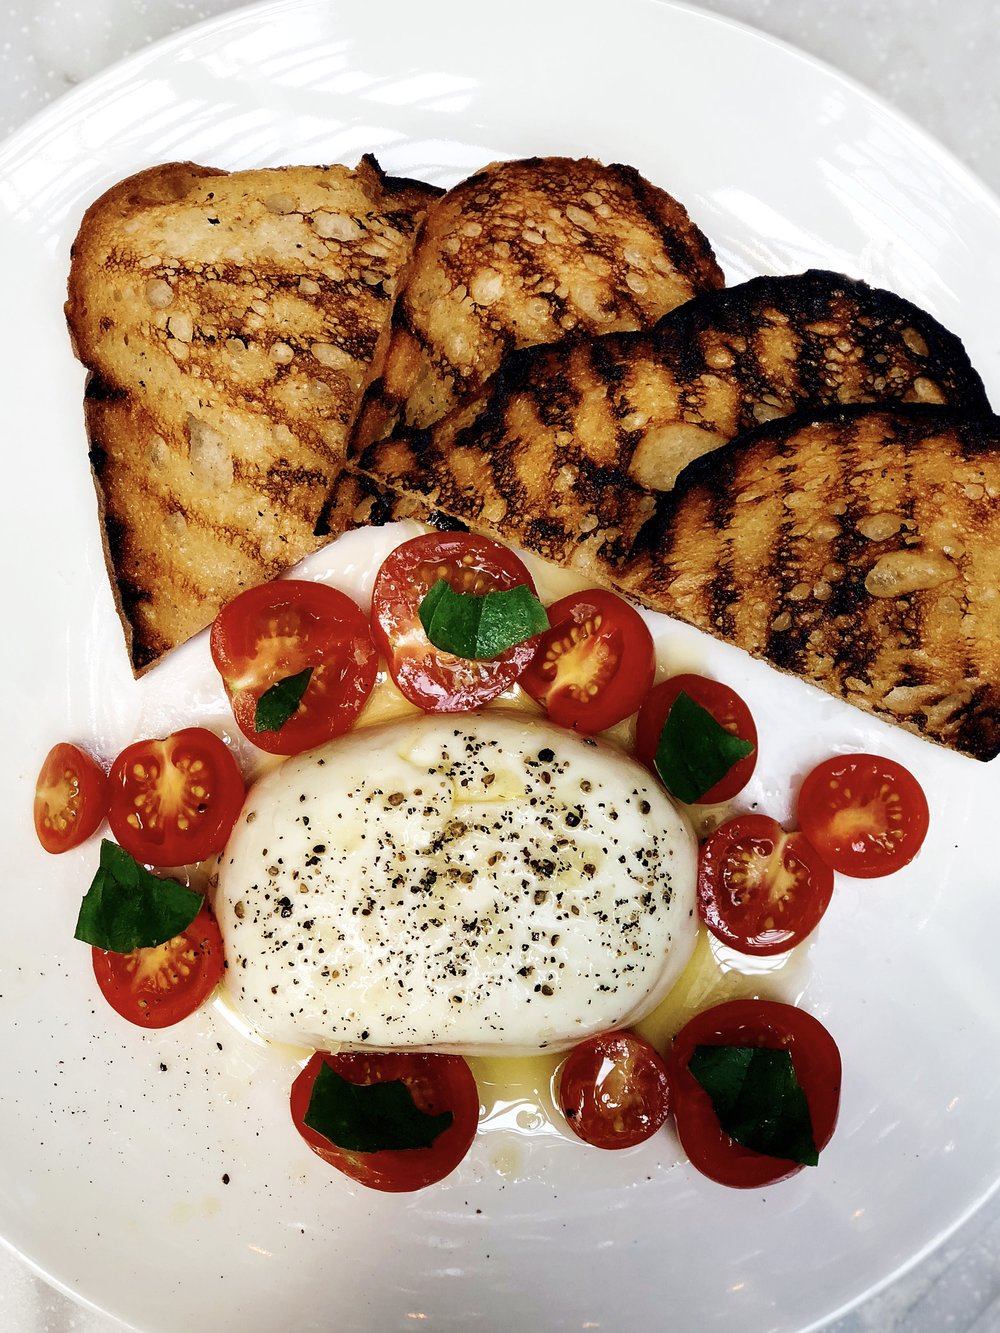 Burrata: Tomatoes, Garlic Bread, Basil